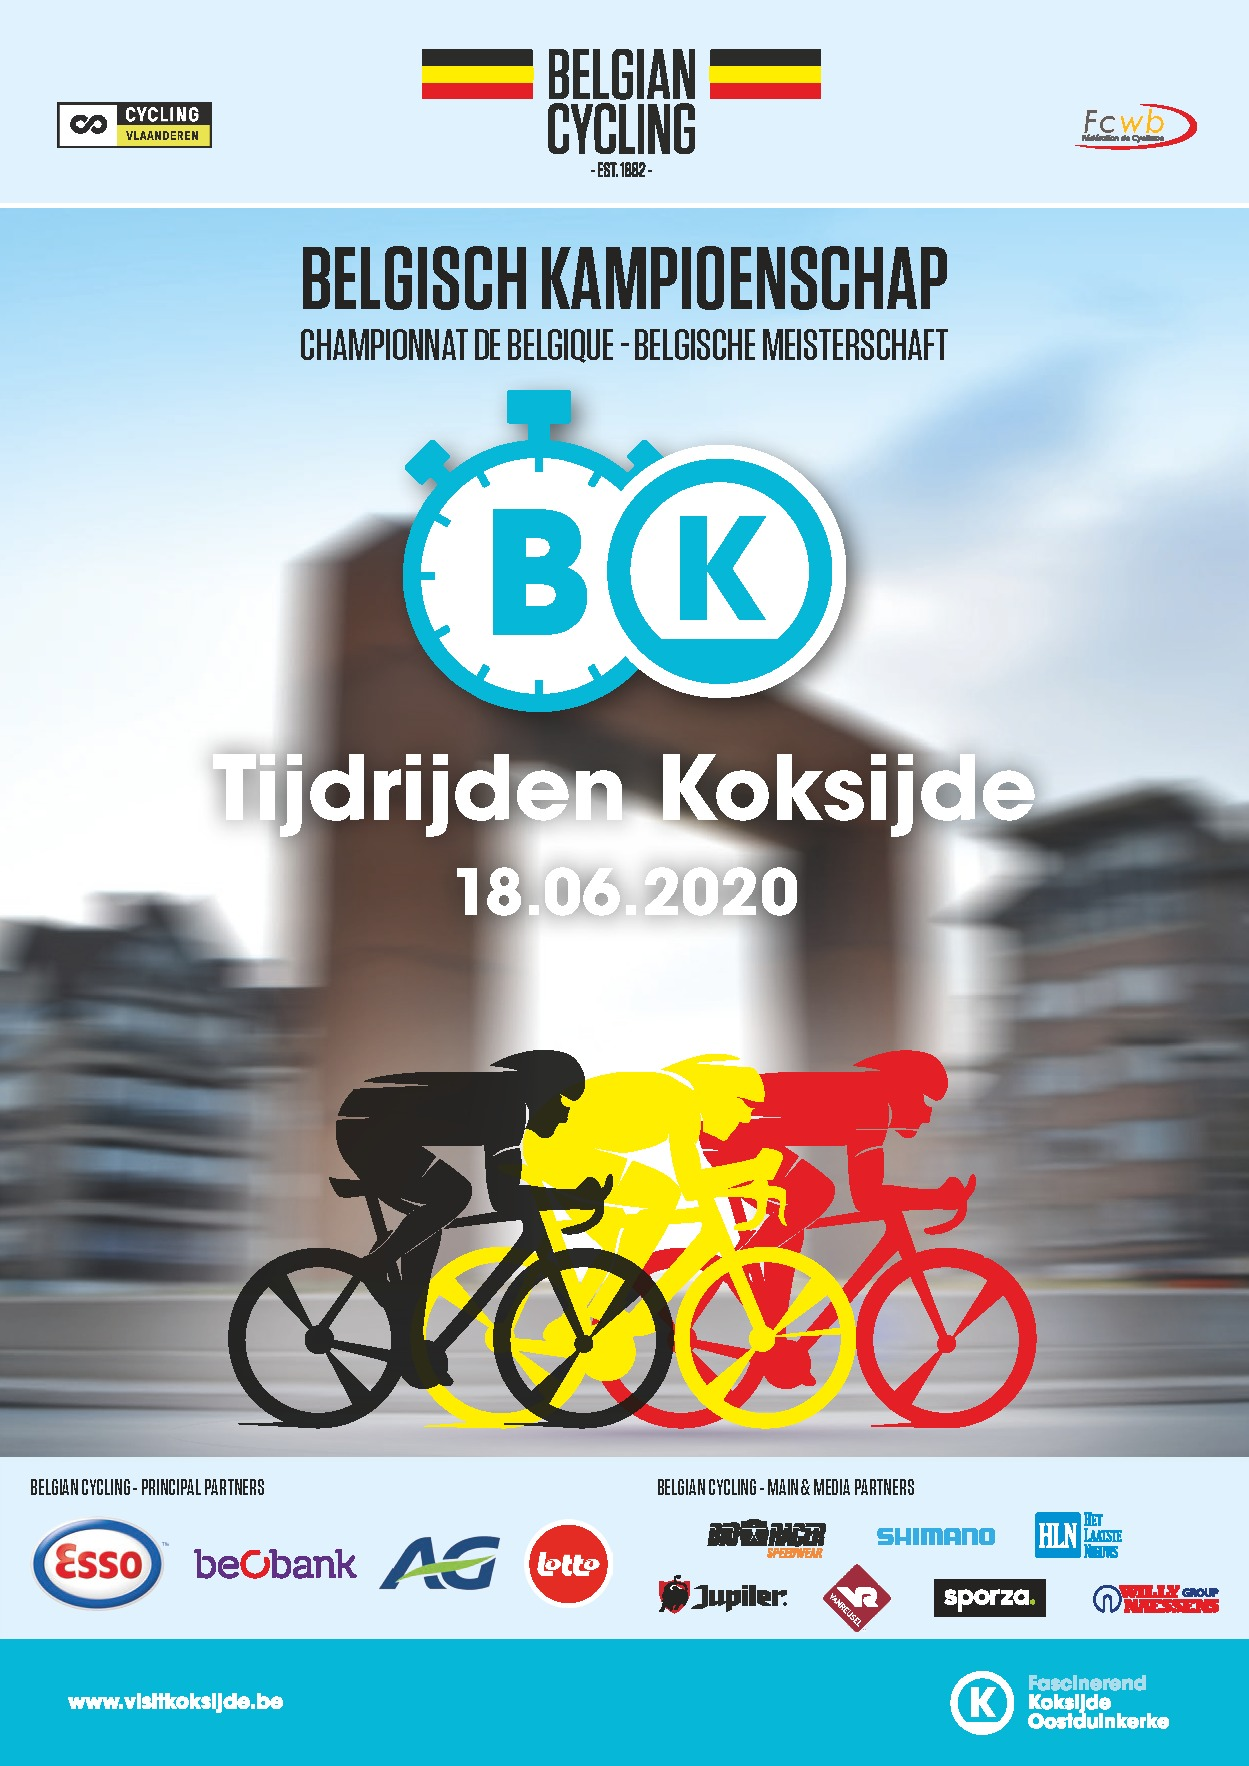 http://www.belgiancycling.be/content.asp?language=nl&id=376&subid=392&sid=377